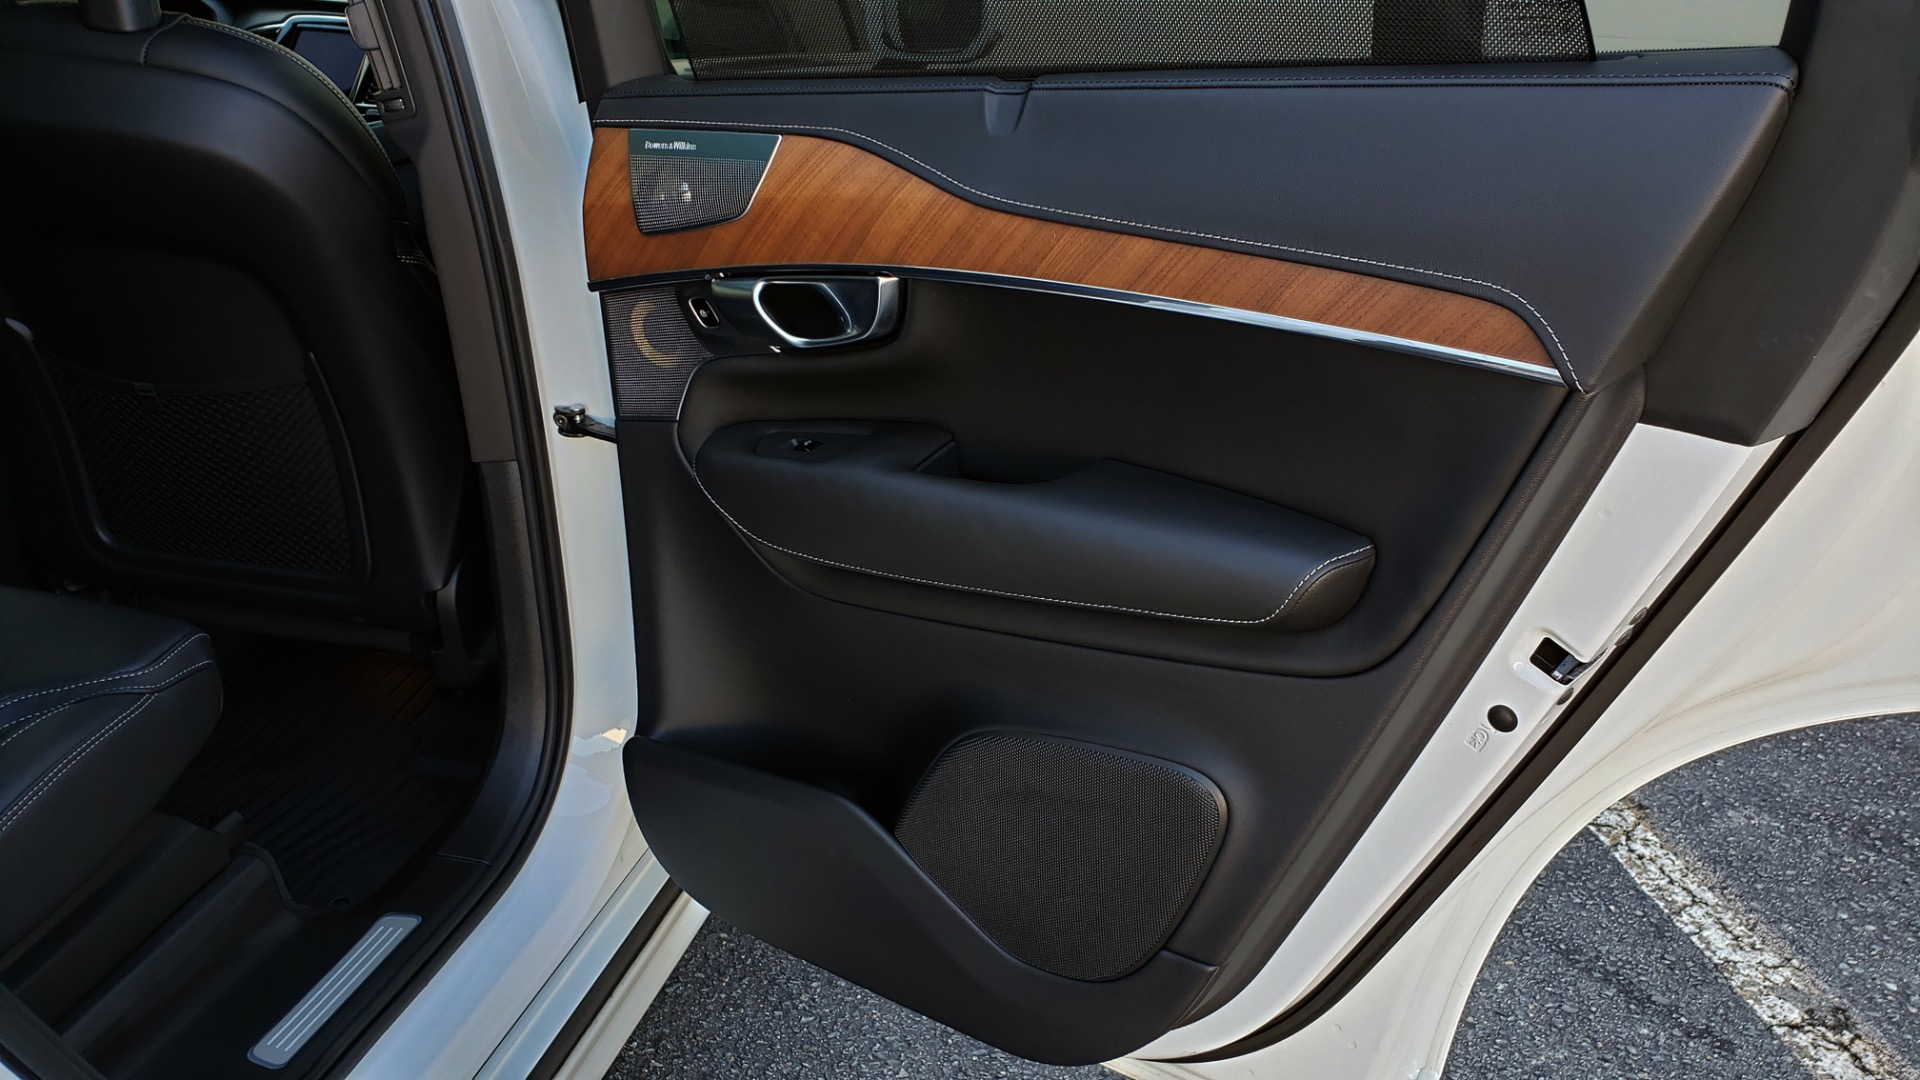 Used 2017 Volvo XC90 INSCRIPTION / AWD / NAV / SUNROOF / 3-ROW / CAMERA for sale Sold at Formula Imports in Charlotte NC 28227 77